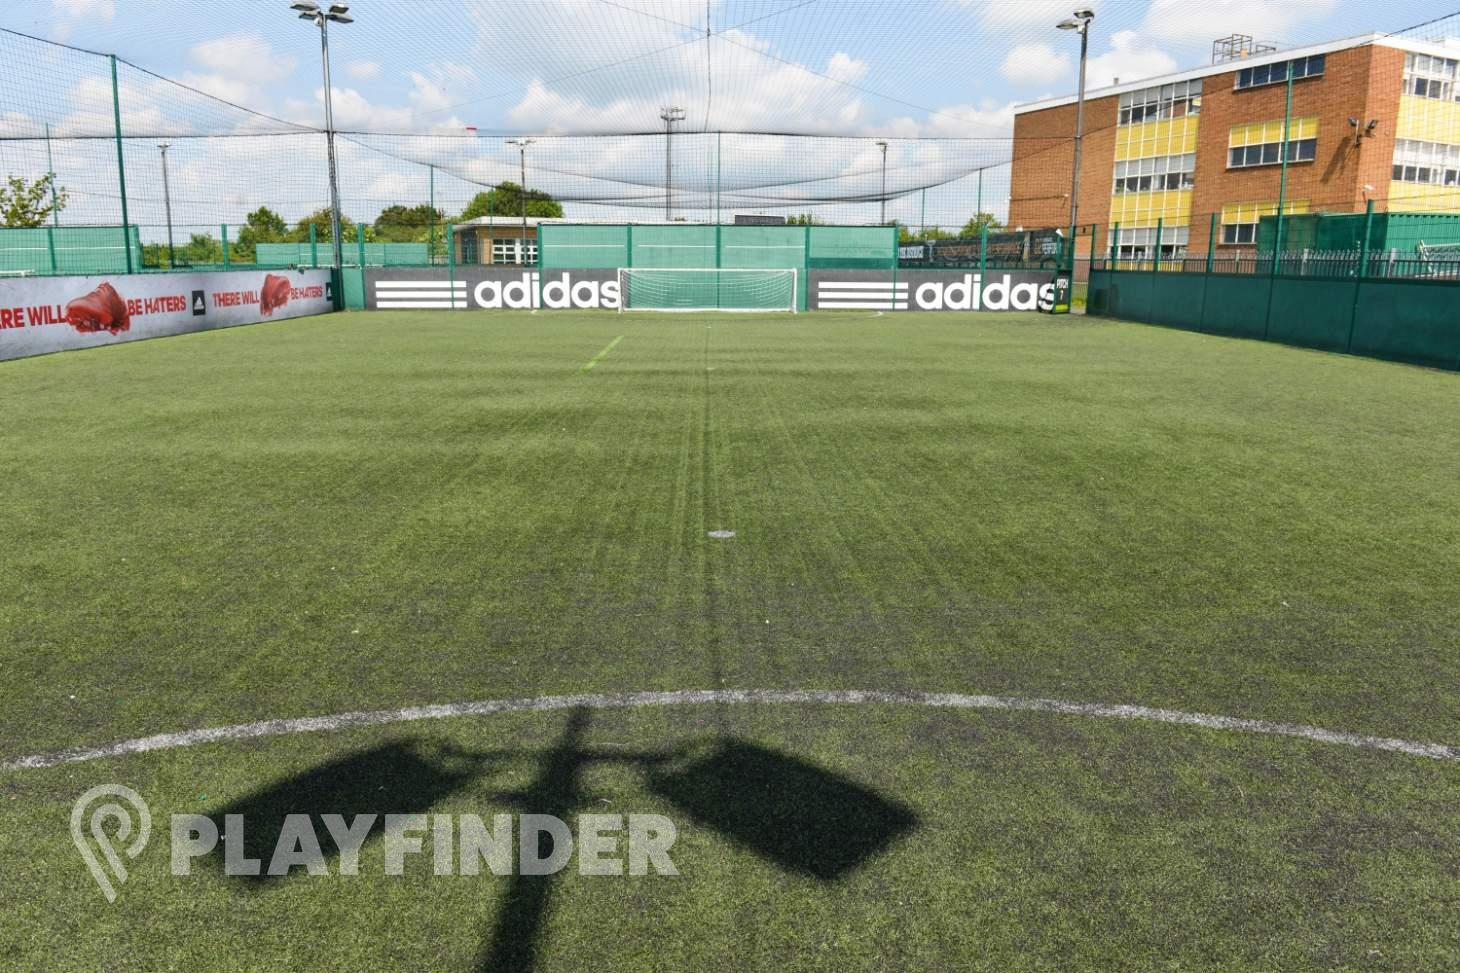 PlayFootball Luton 5 a side | 3G Astroturf football pitch